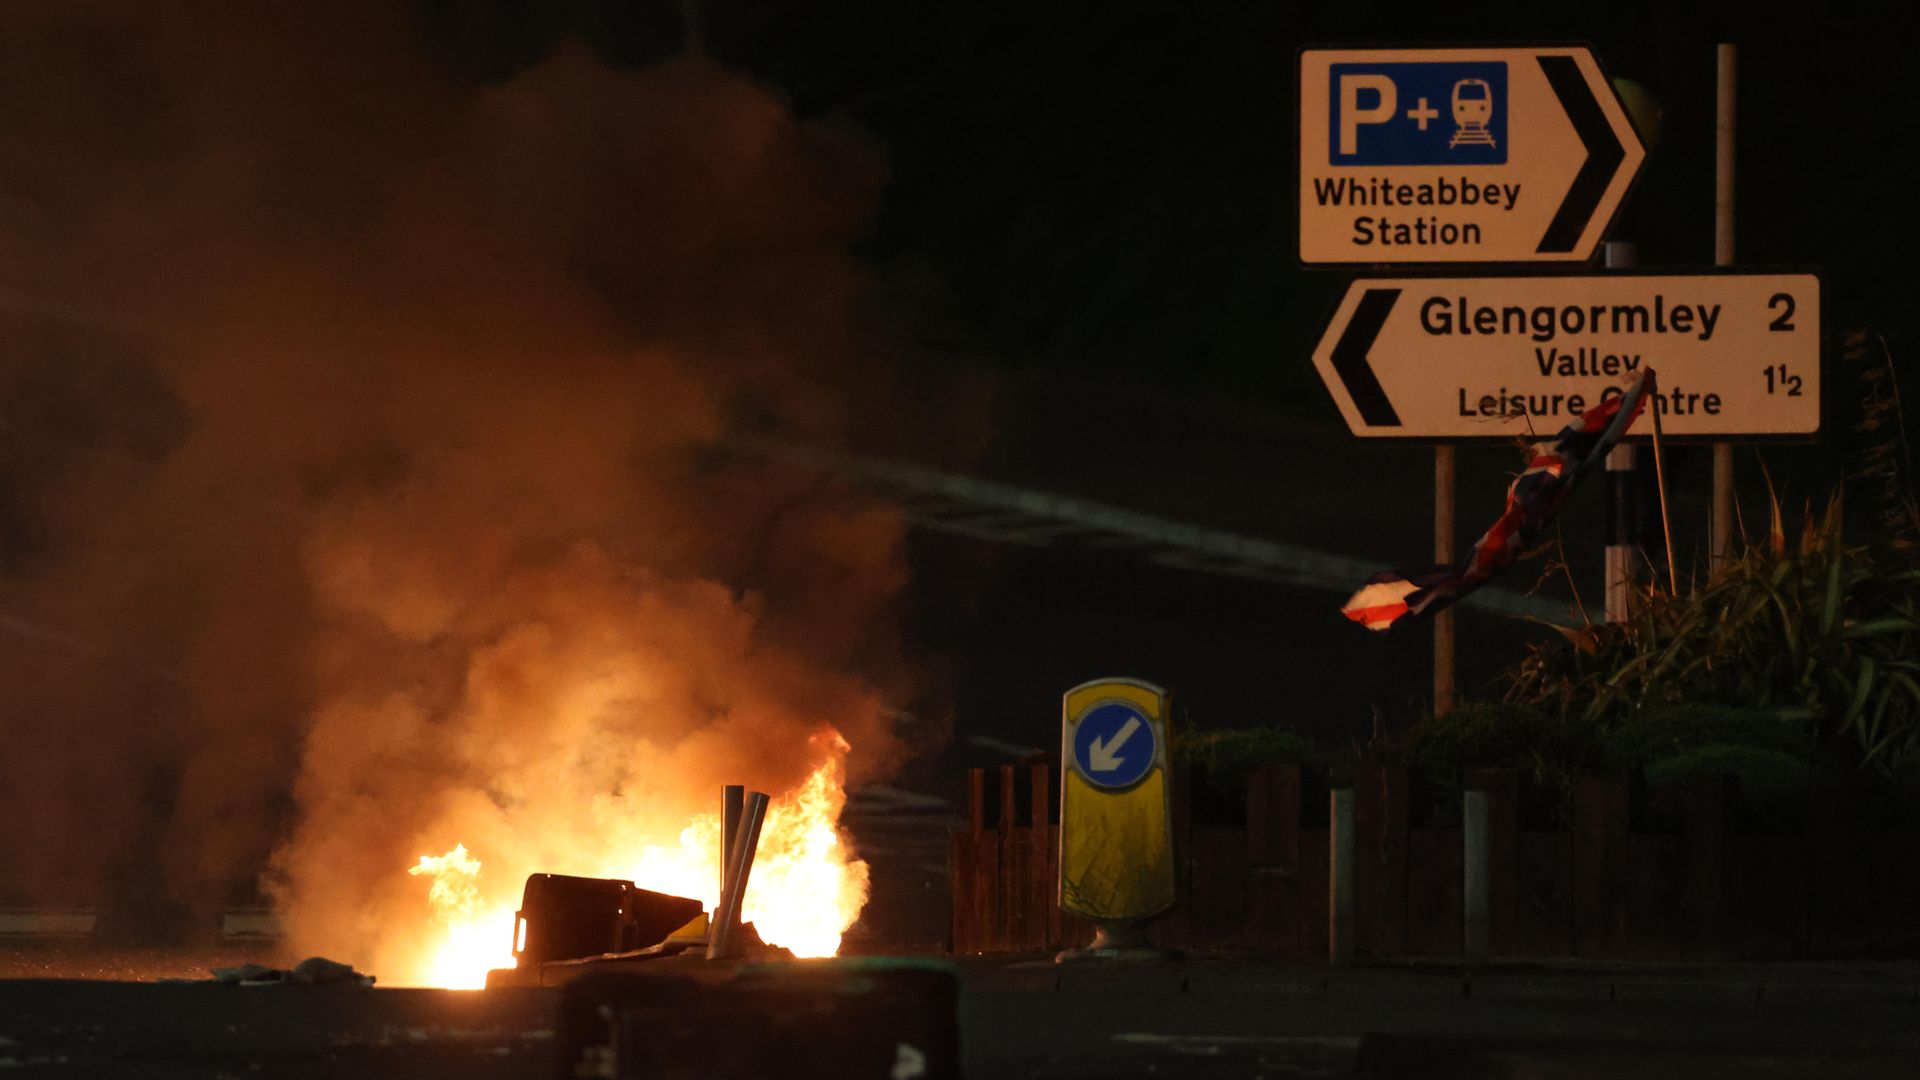 Bins are set ablaze at the Cloughfern roundabout in Newtownabbey - Credit: PA